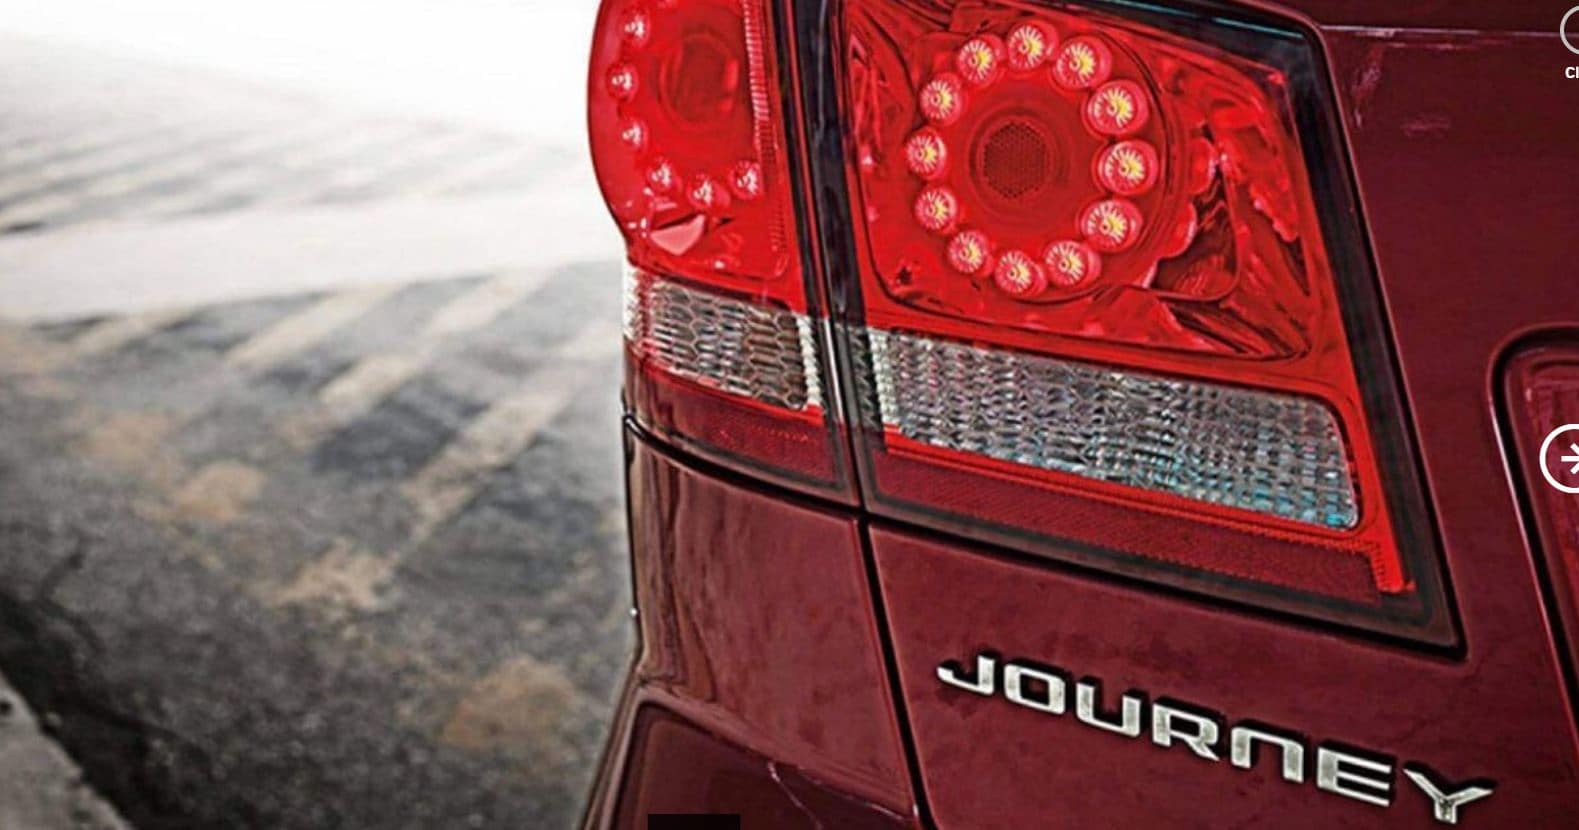 red dodge journey rear taillight and text that reads journey with rear taillights lit